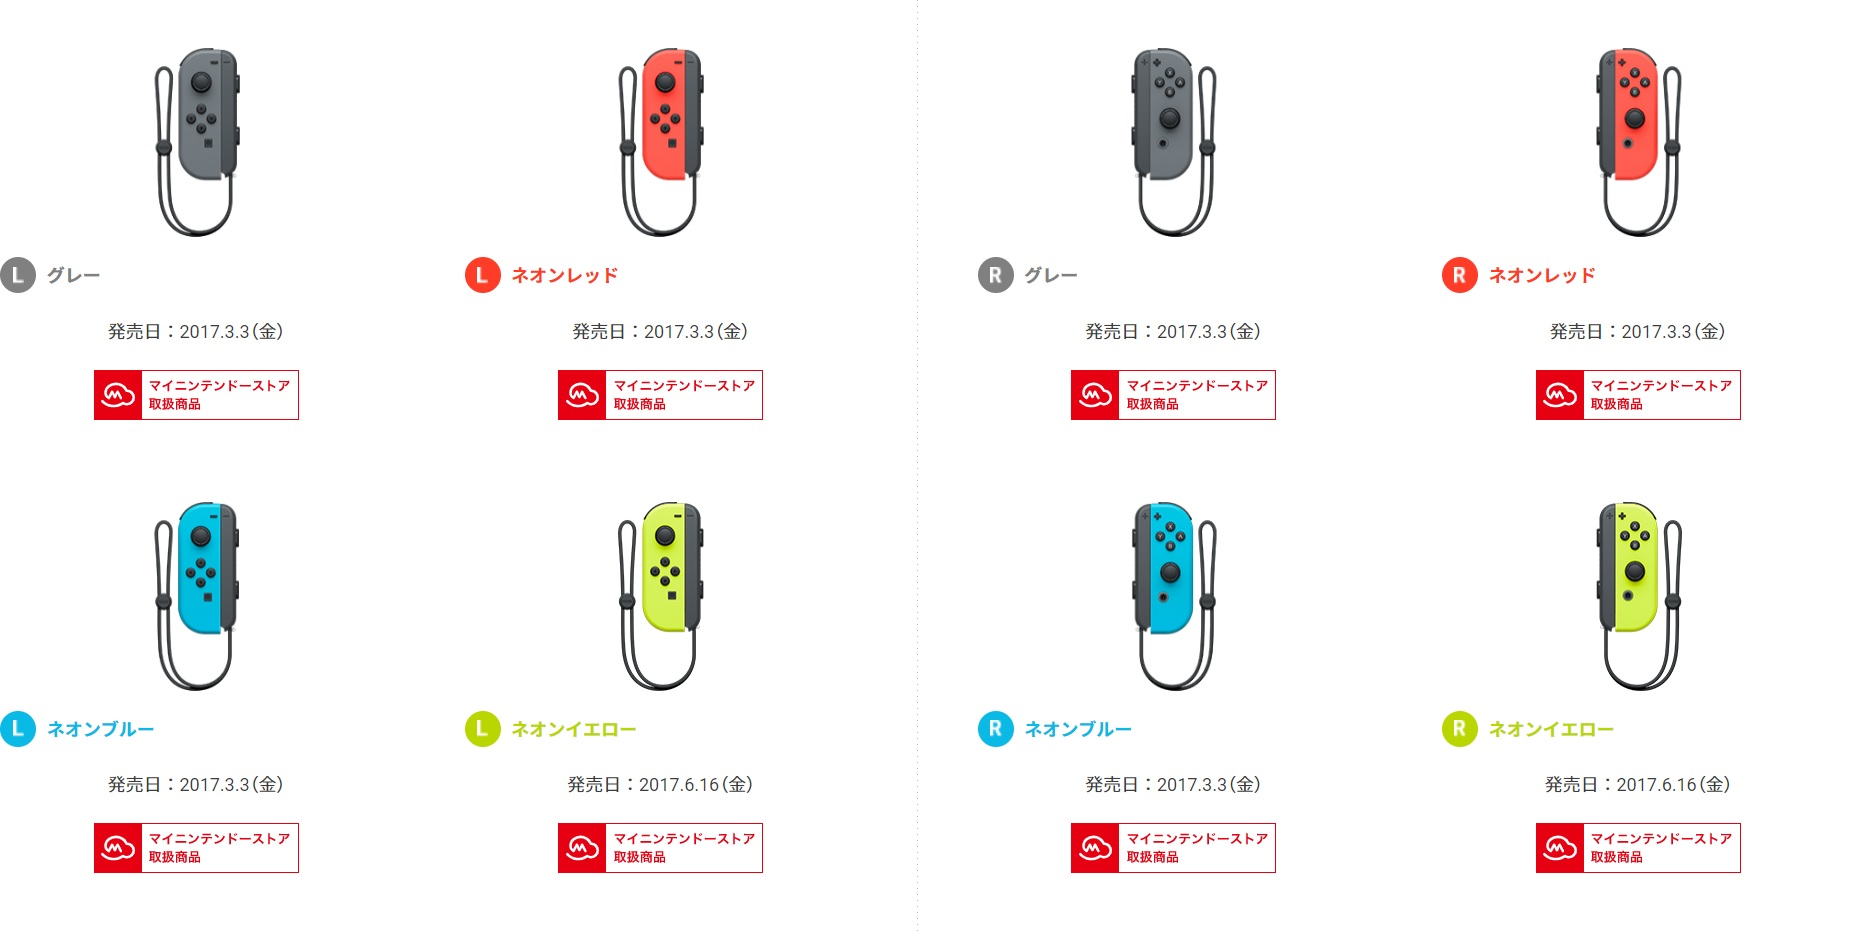 Japan is discounting its Switch Joy-Con controllers and I hope Nintendo passes on the savings to the rest of the world screenshot